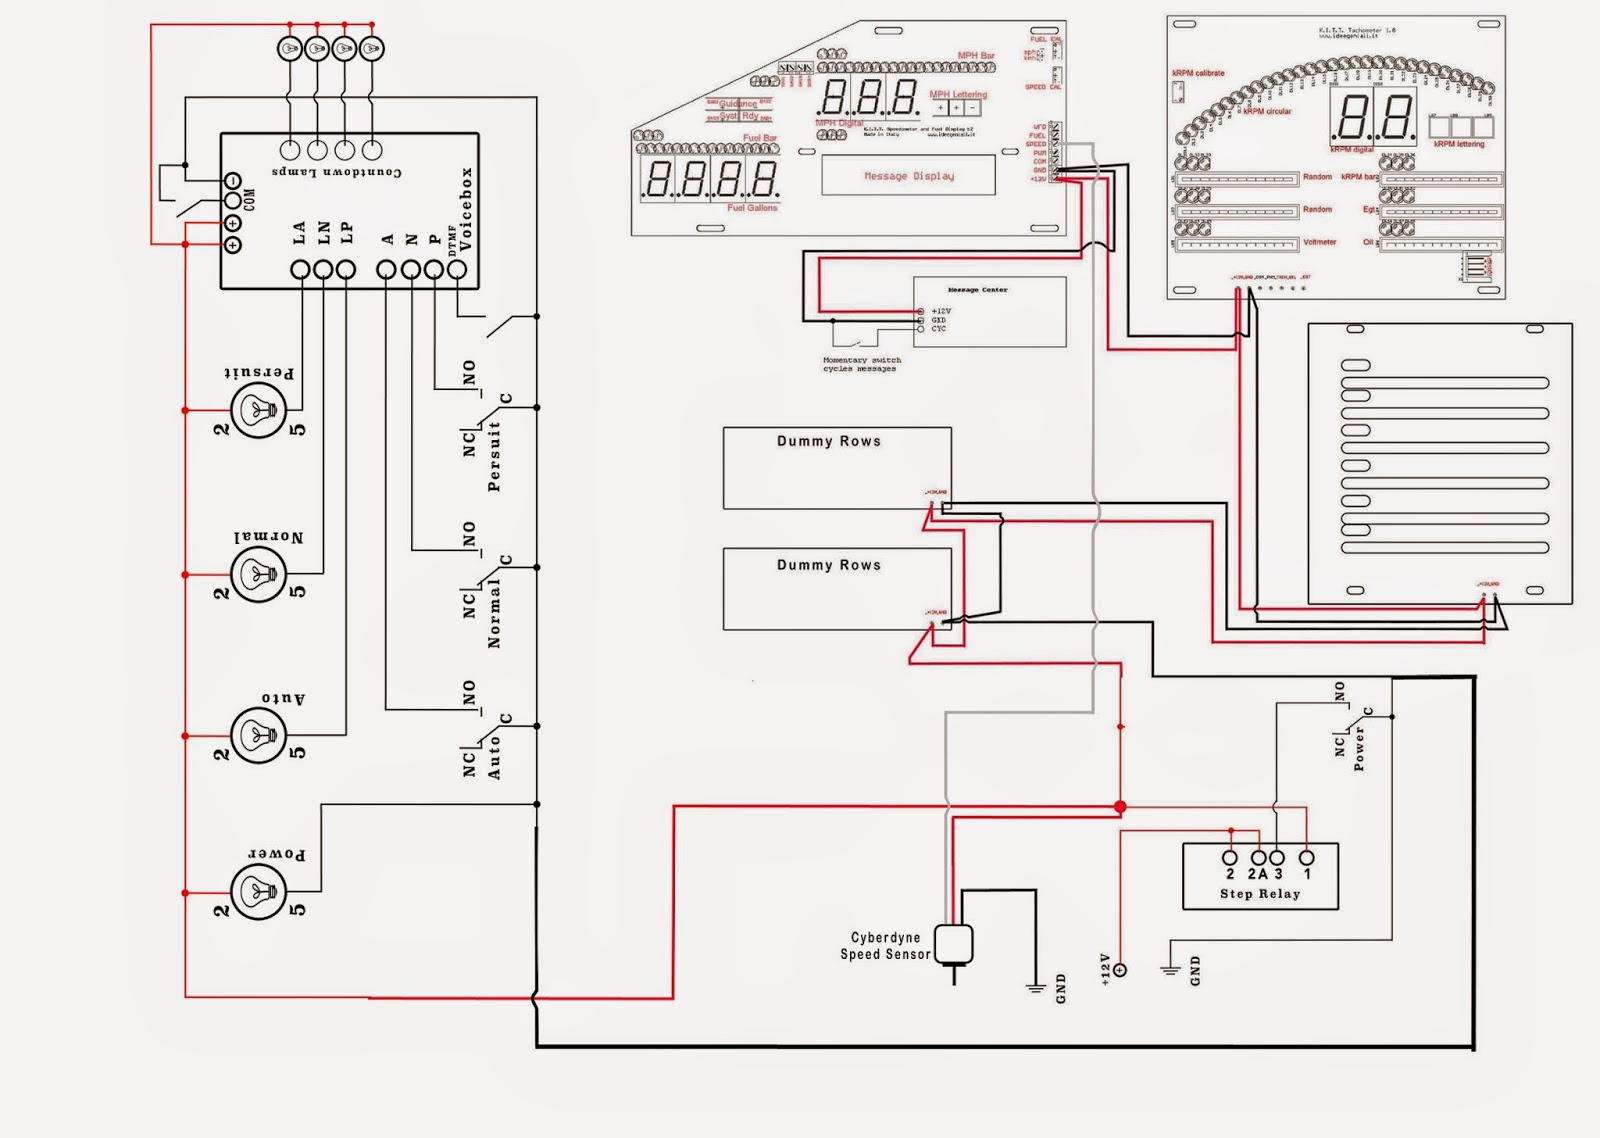 3 Speed Sensor Wire Diagram Archive Of Automotive Wiring My Knight Rider 2000 Project Cyberdyne Worked Into The Rh Myknightrider2000 Blogspot Com